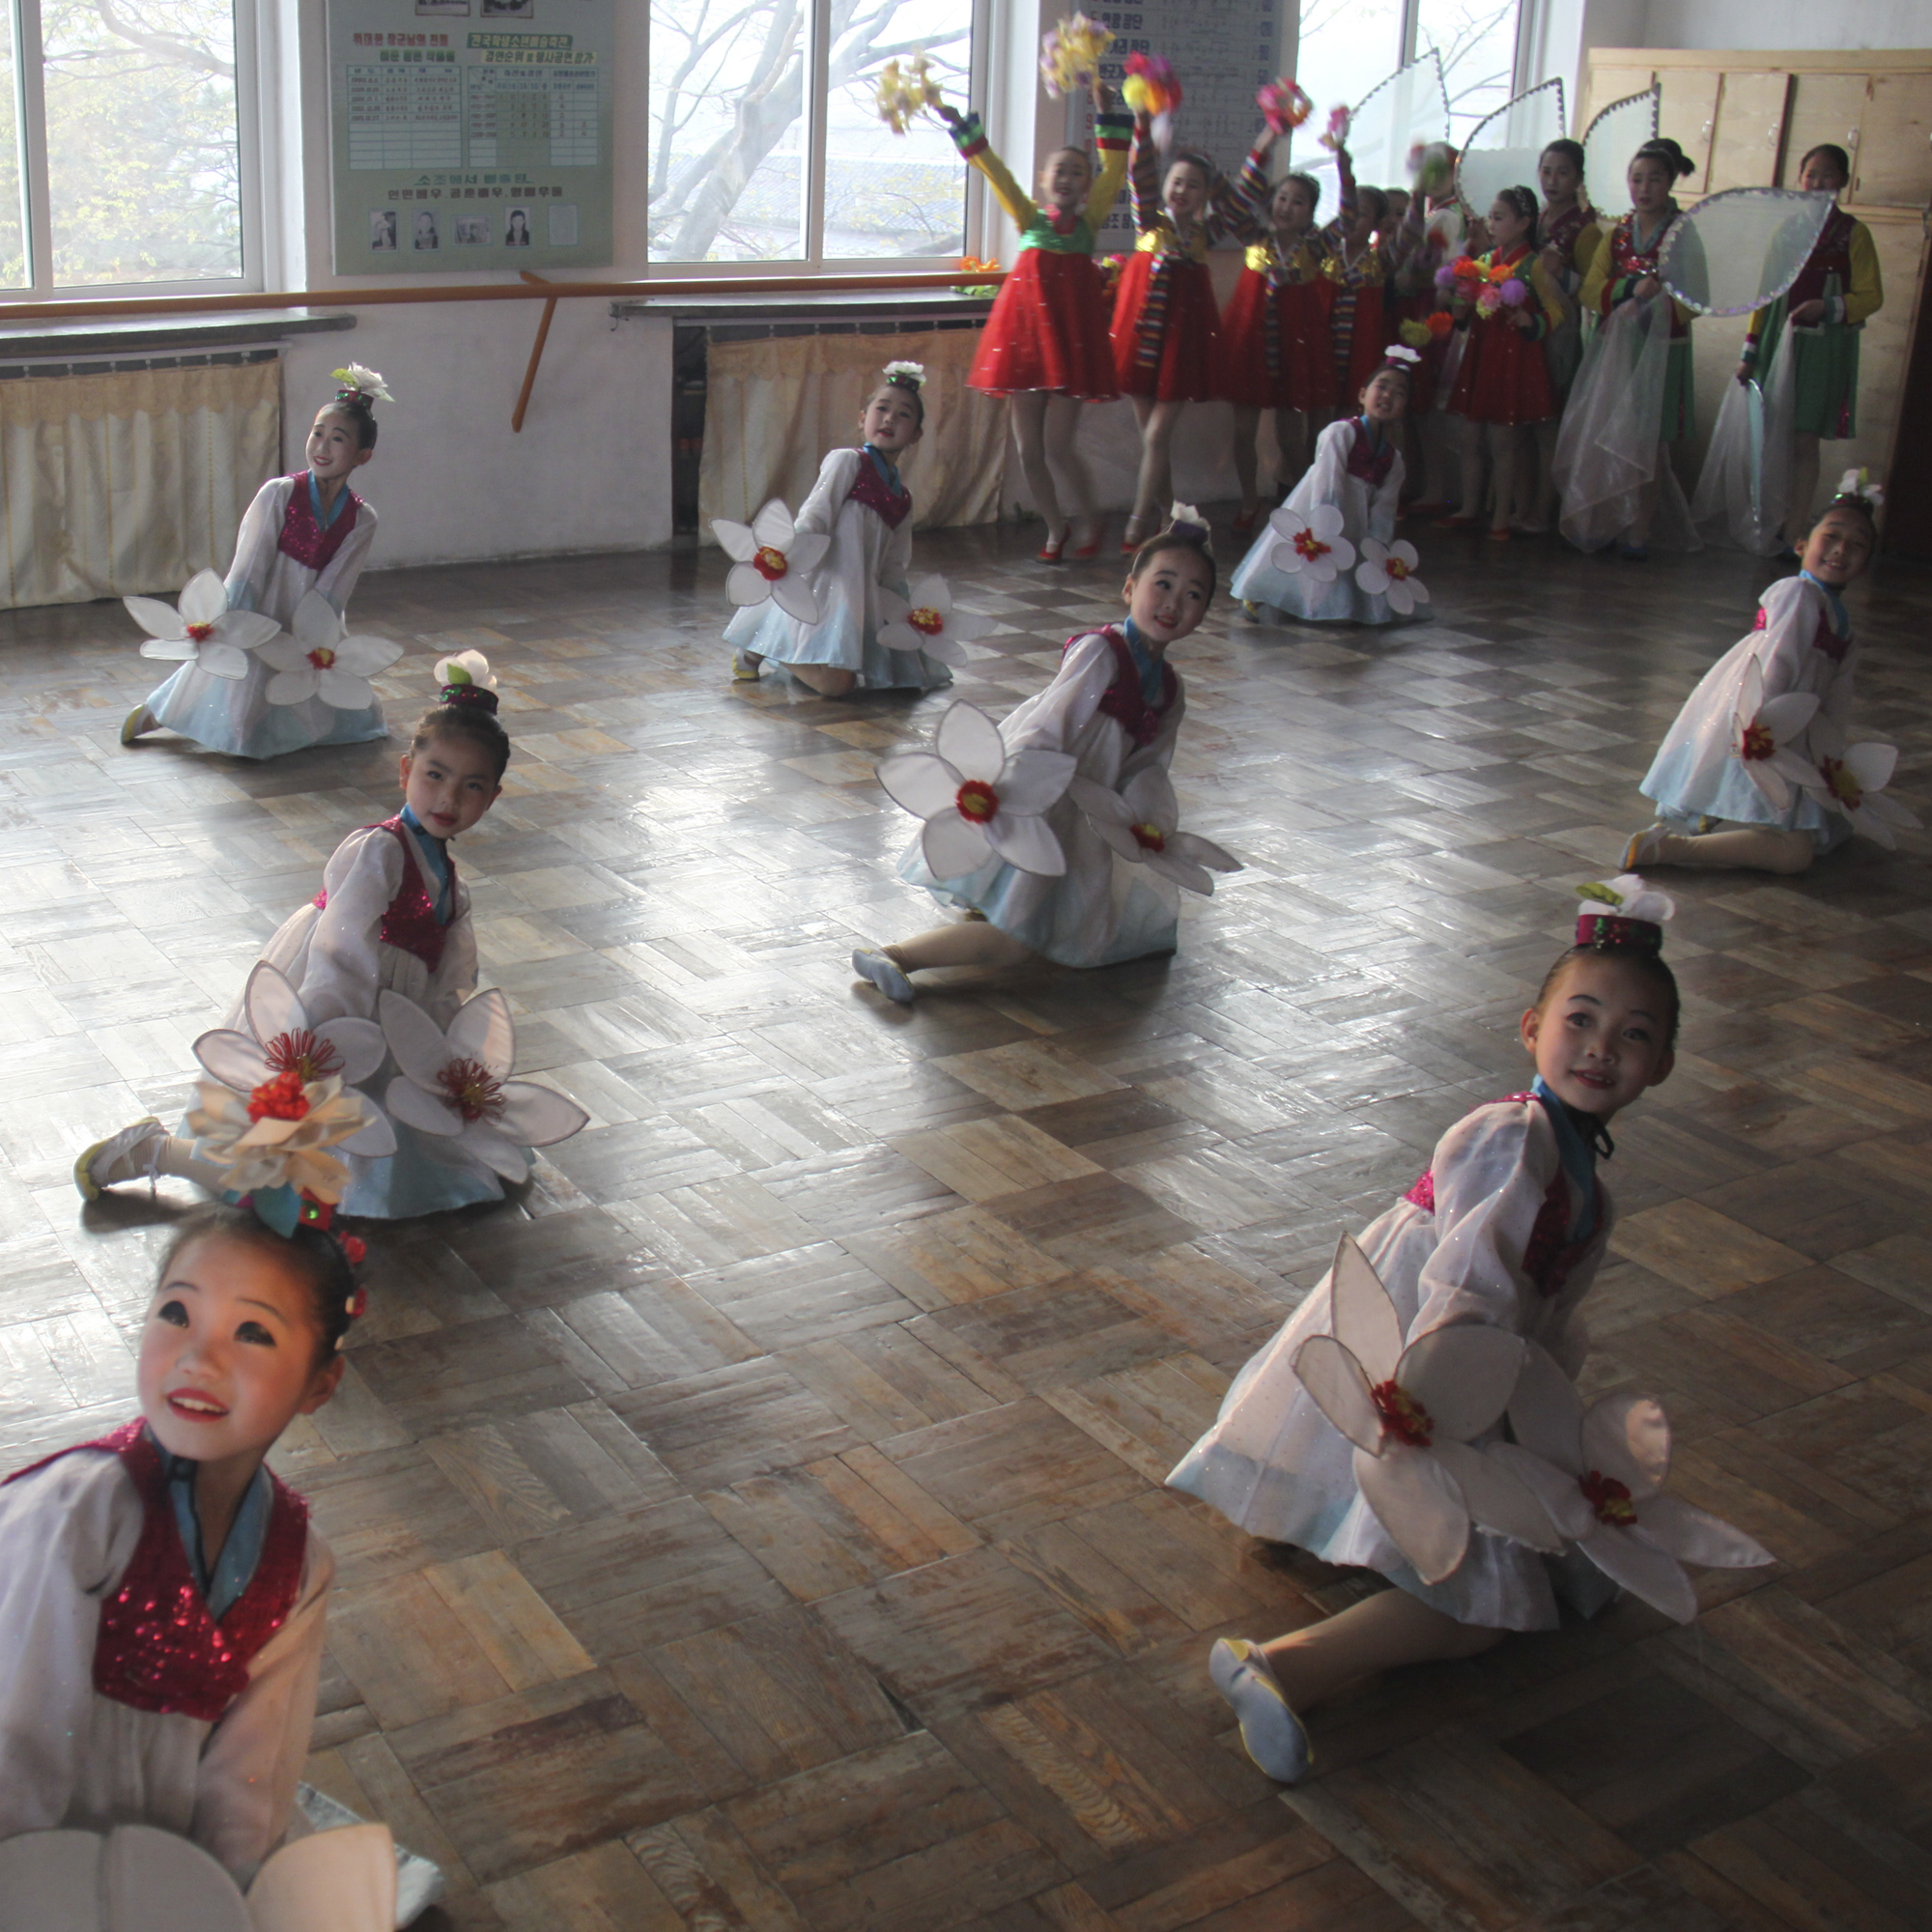 North Korean children practice for a performance at the Kaesong Schoolchildren's Palace. So-called Schoolchildren's Palaces in North Korea are centers of art and performance where talented kids in each city go after school to work on dance, music, martial arts, calligraphy, and so on.